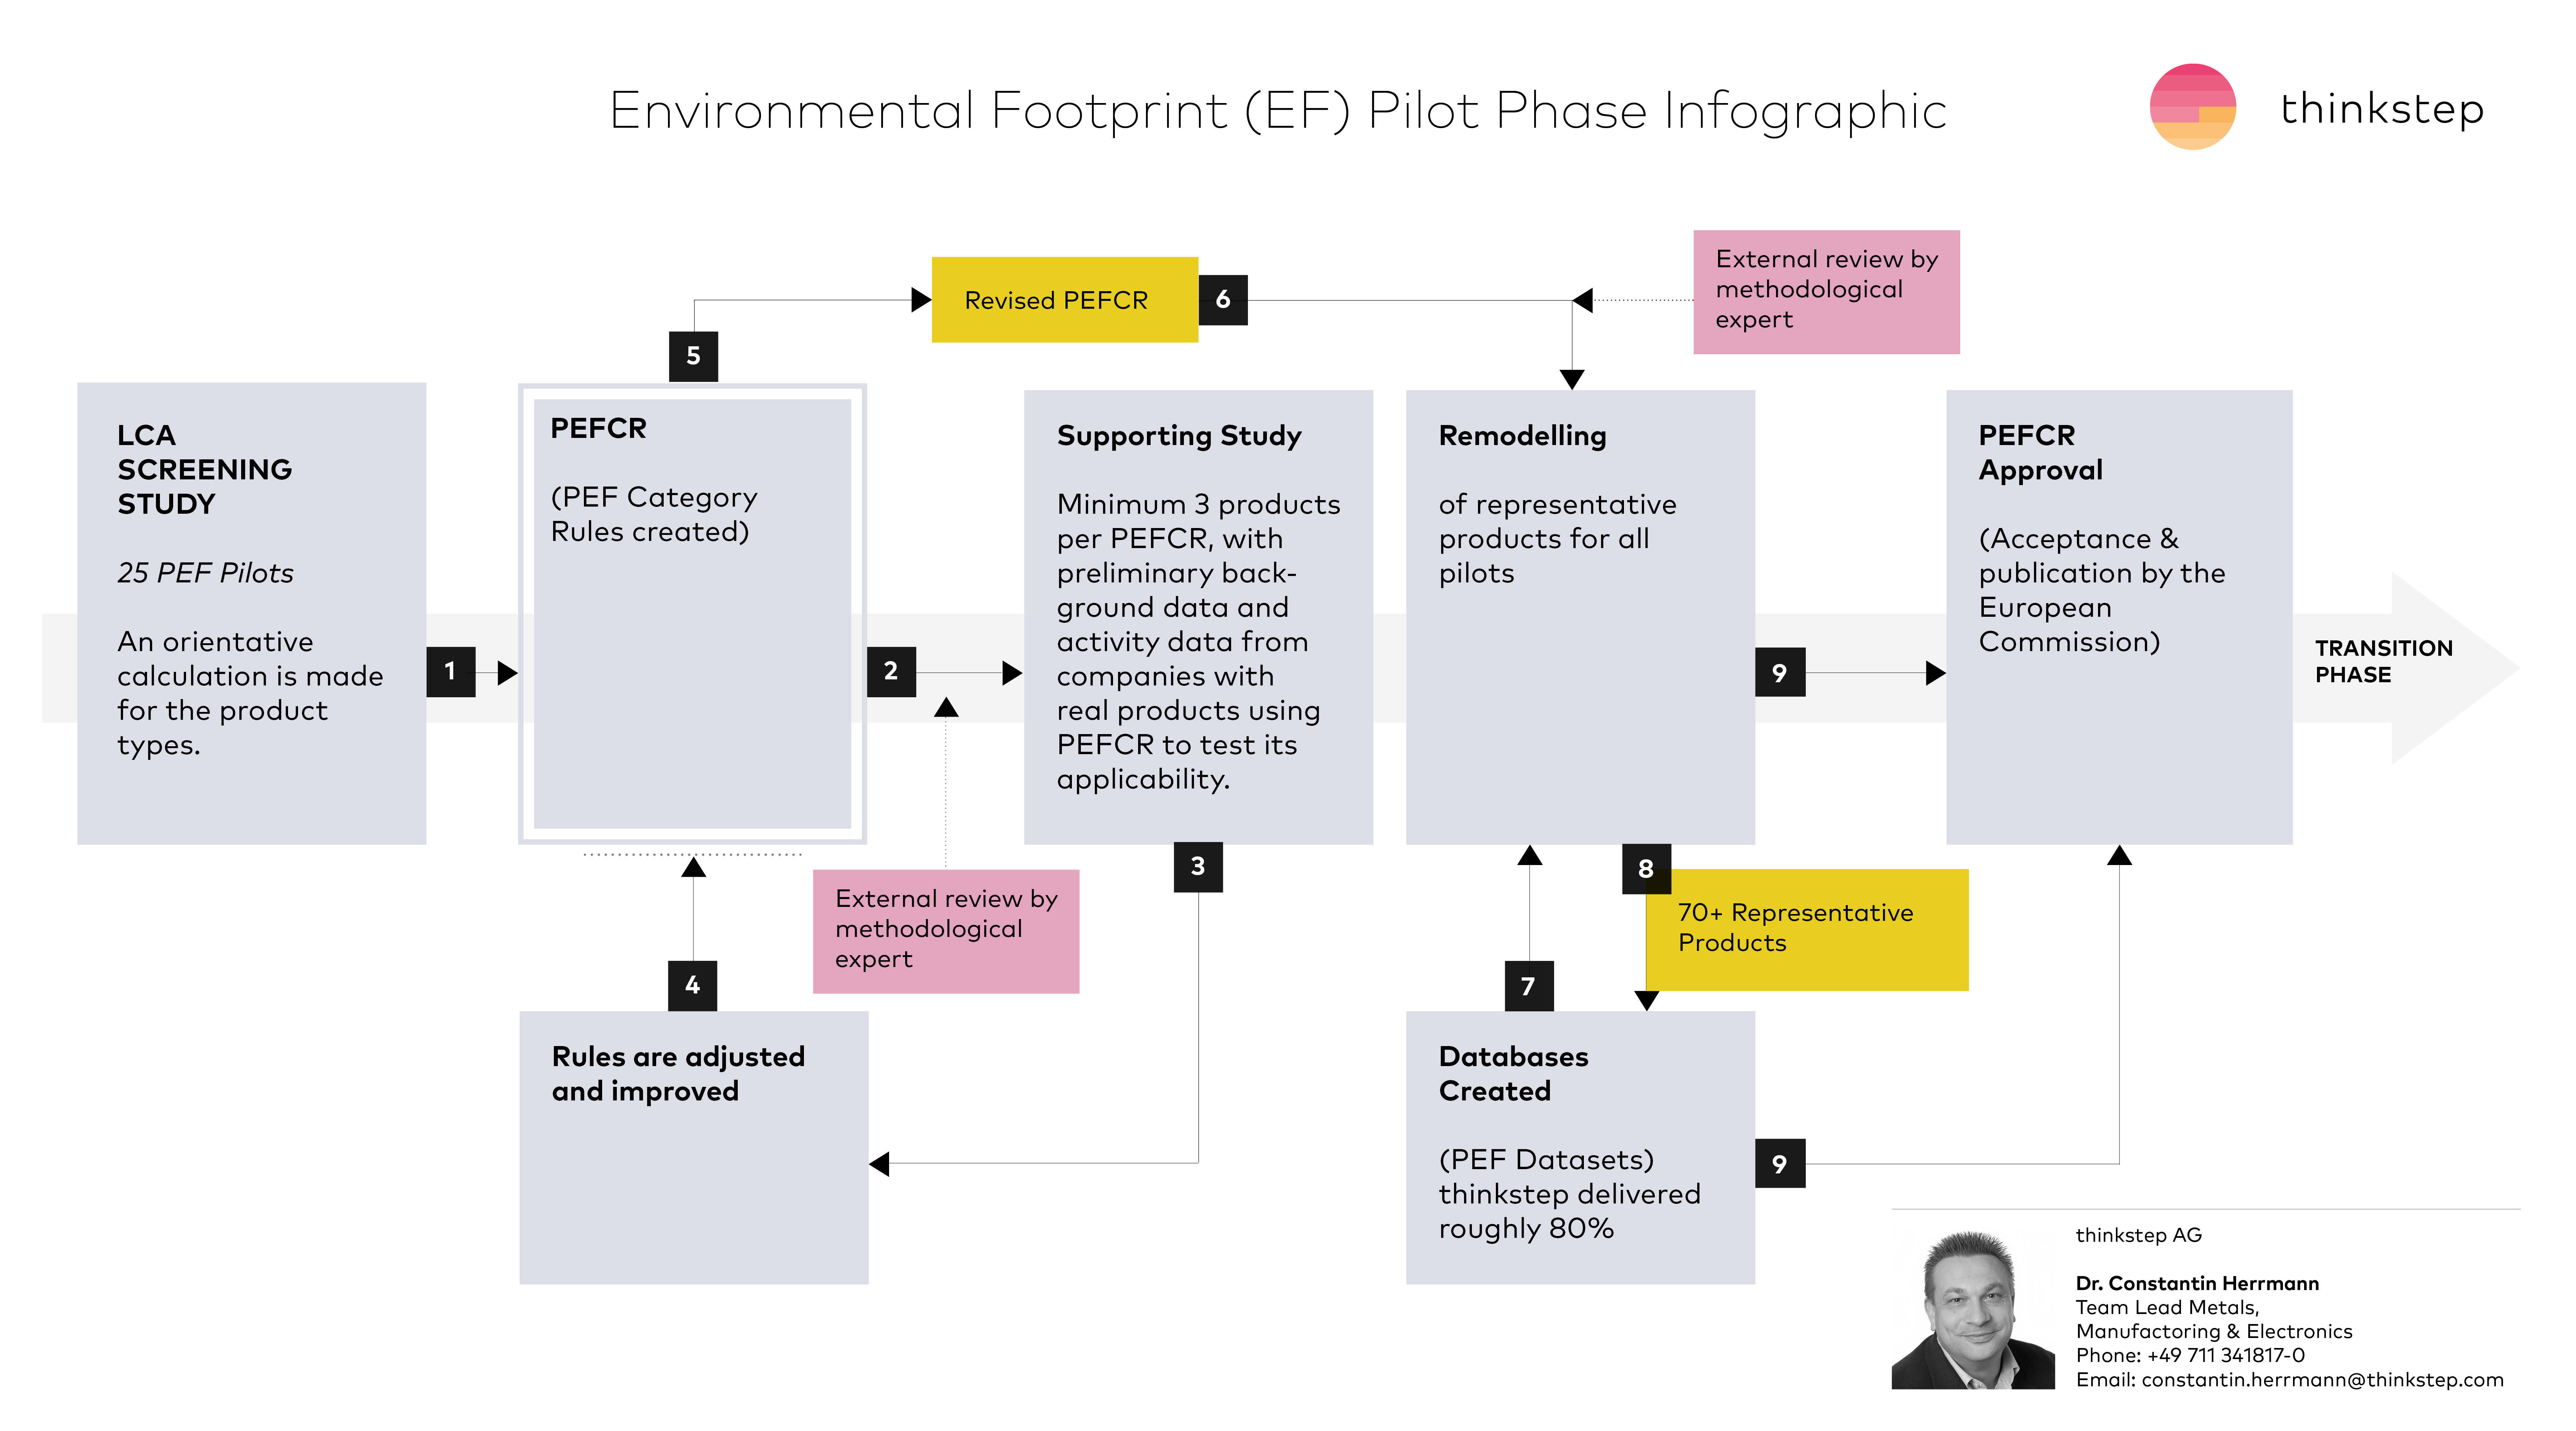 PEF pilot phase infographic